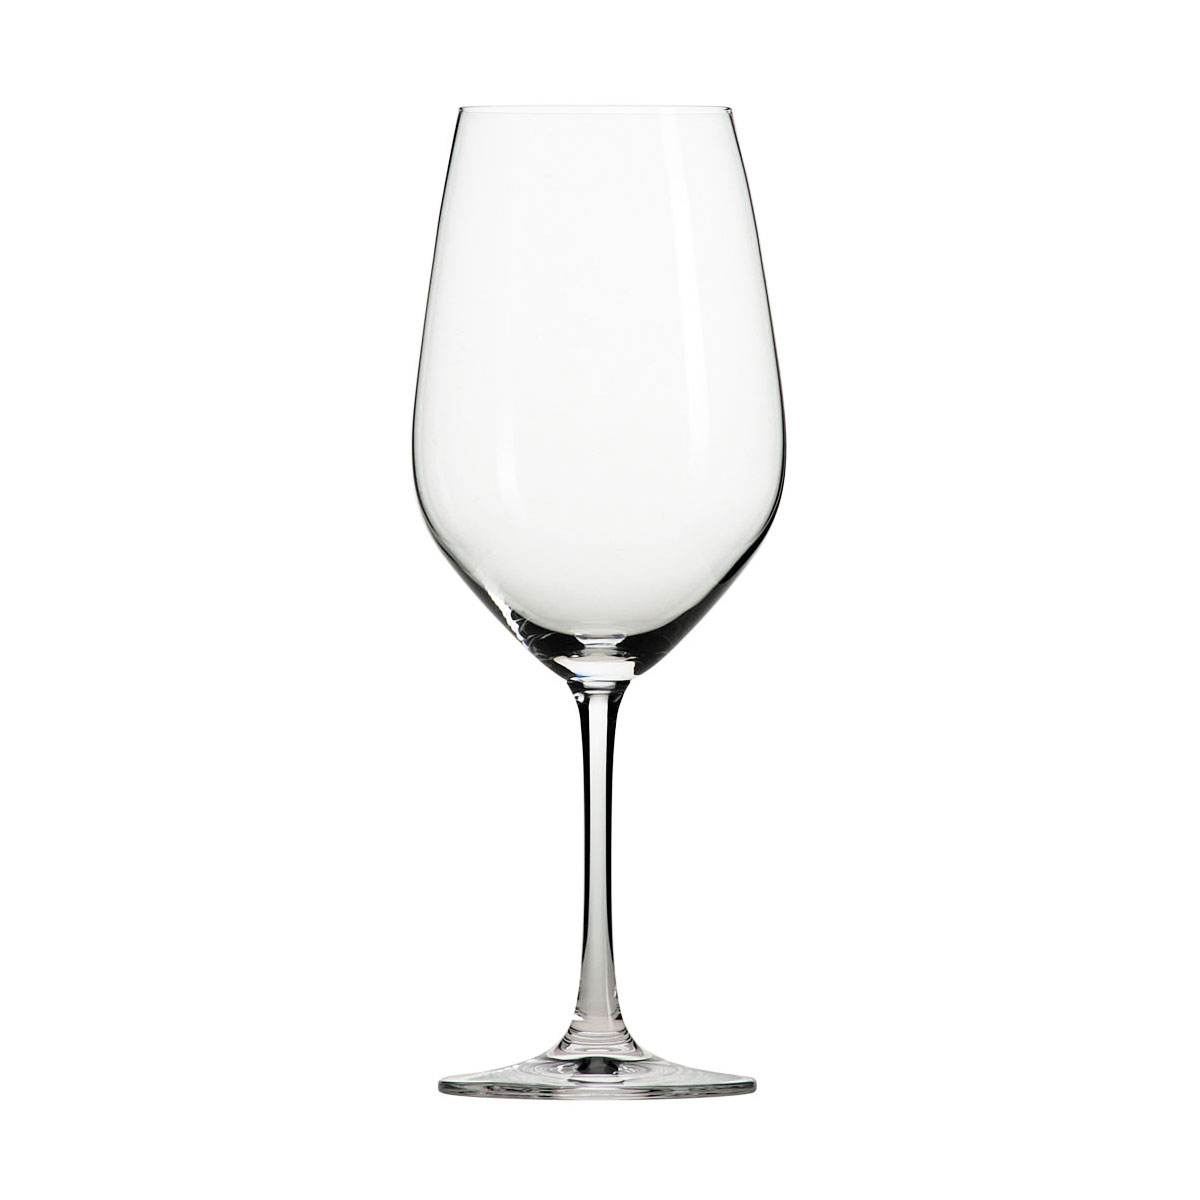 Schott Zwiesel Tritan Crystal, Forte Crystal Wine and Water, Single